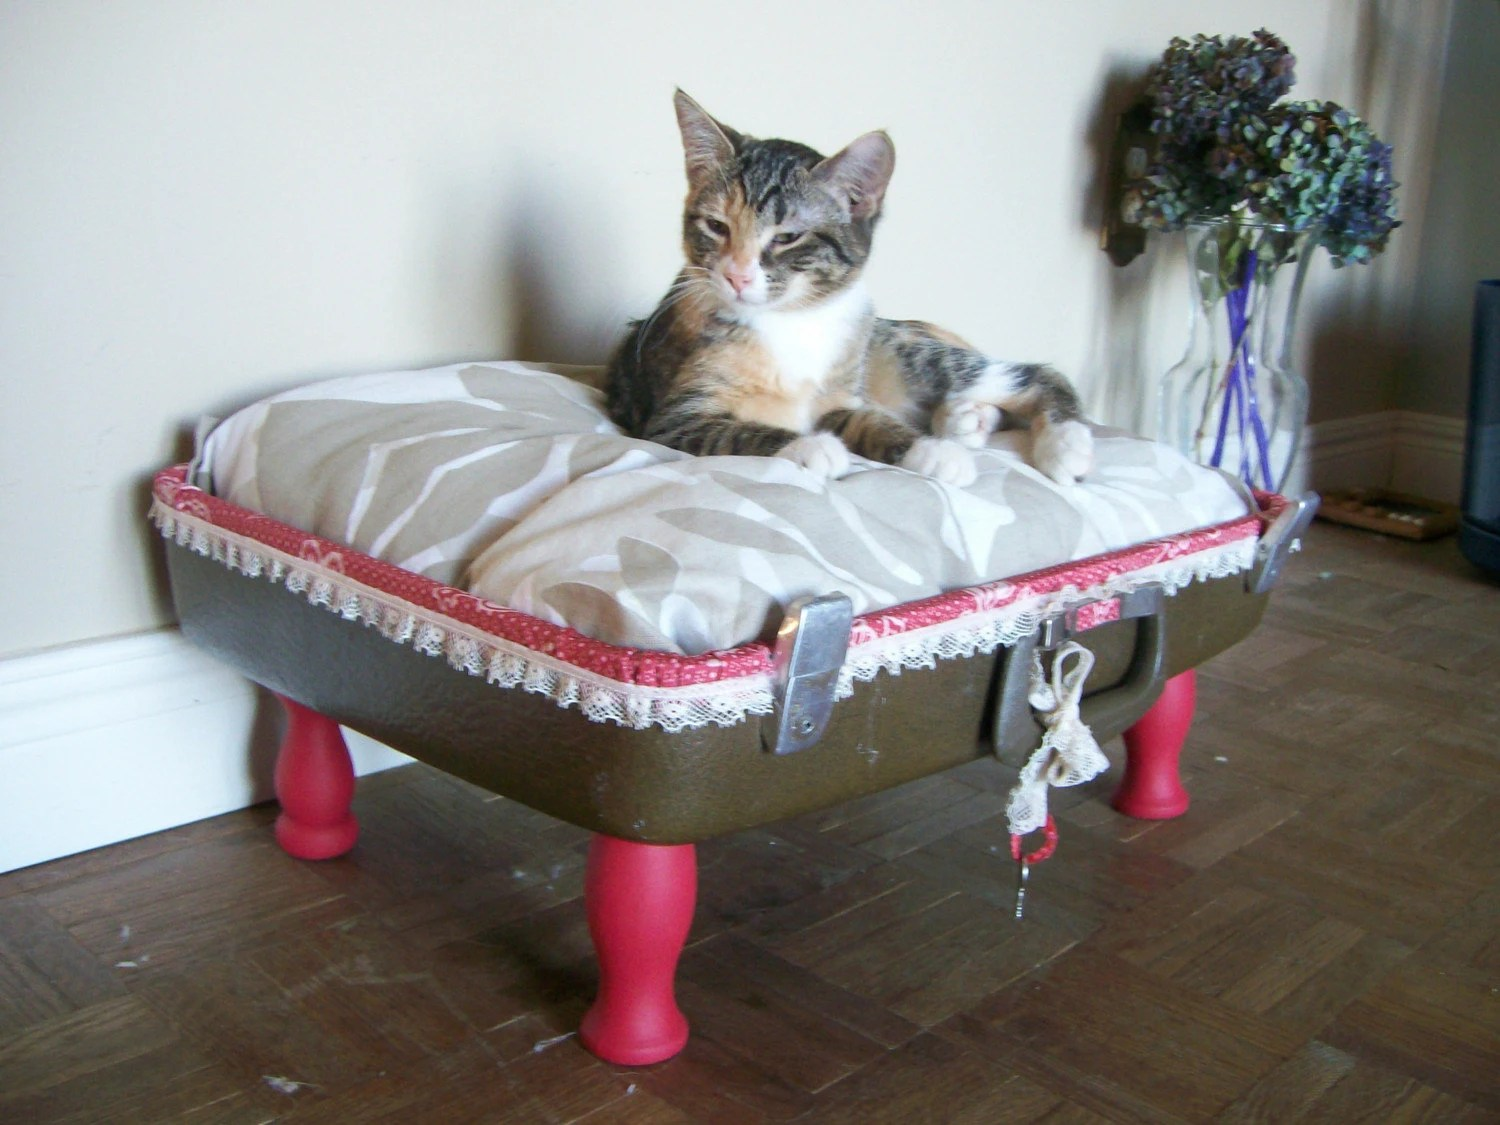 O N  S A L E   Vintage Upcycled Suitcase Pet Bed - Brown, White, Red with Ribbon - Eco Chic